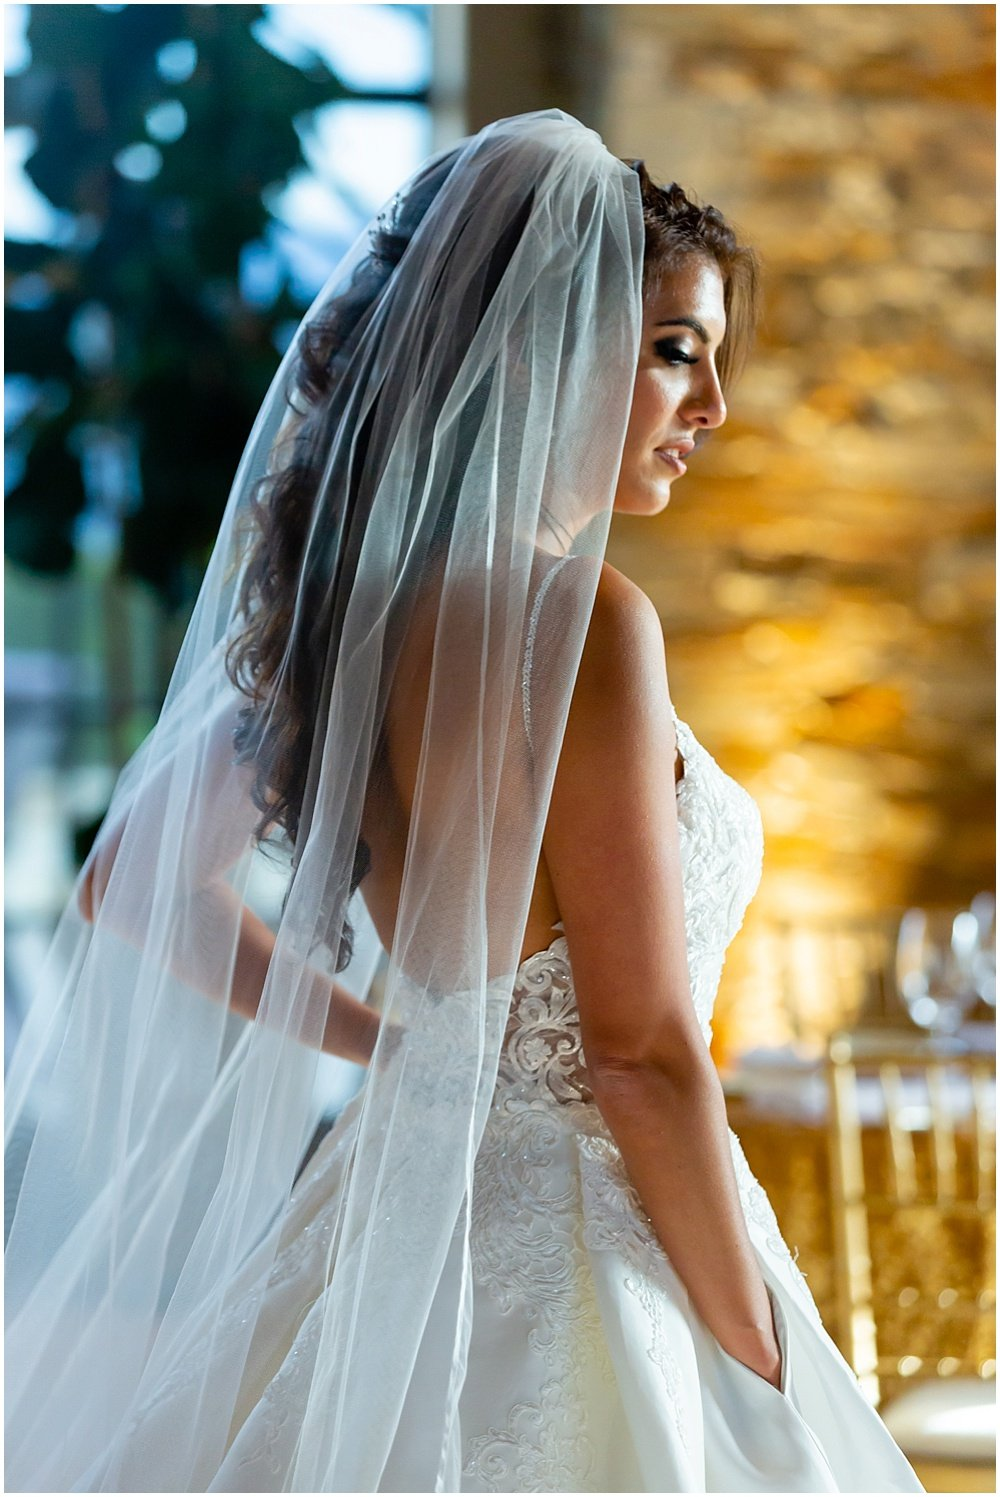 Bridal portrait at tehama golf club wedding by chloe jackman photography